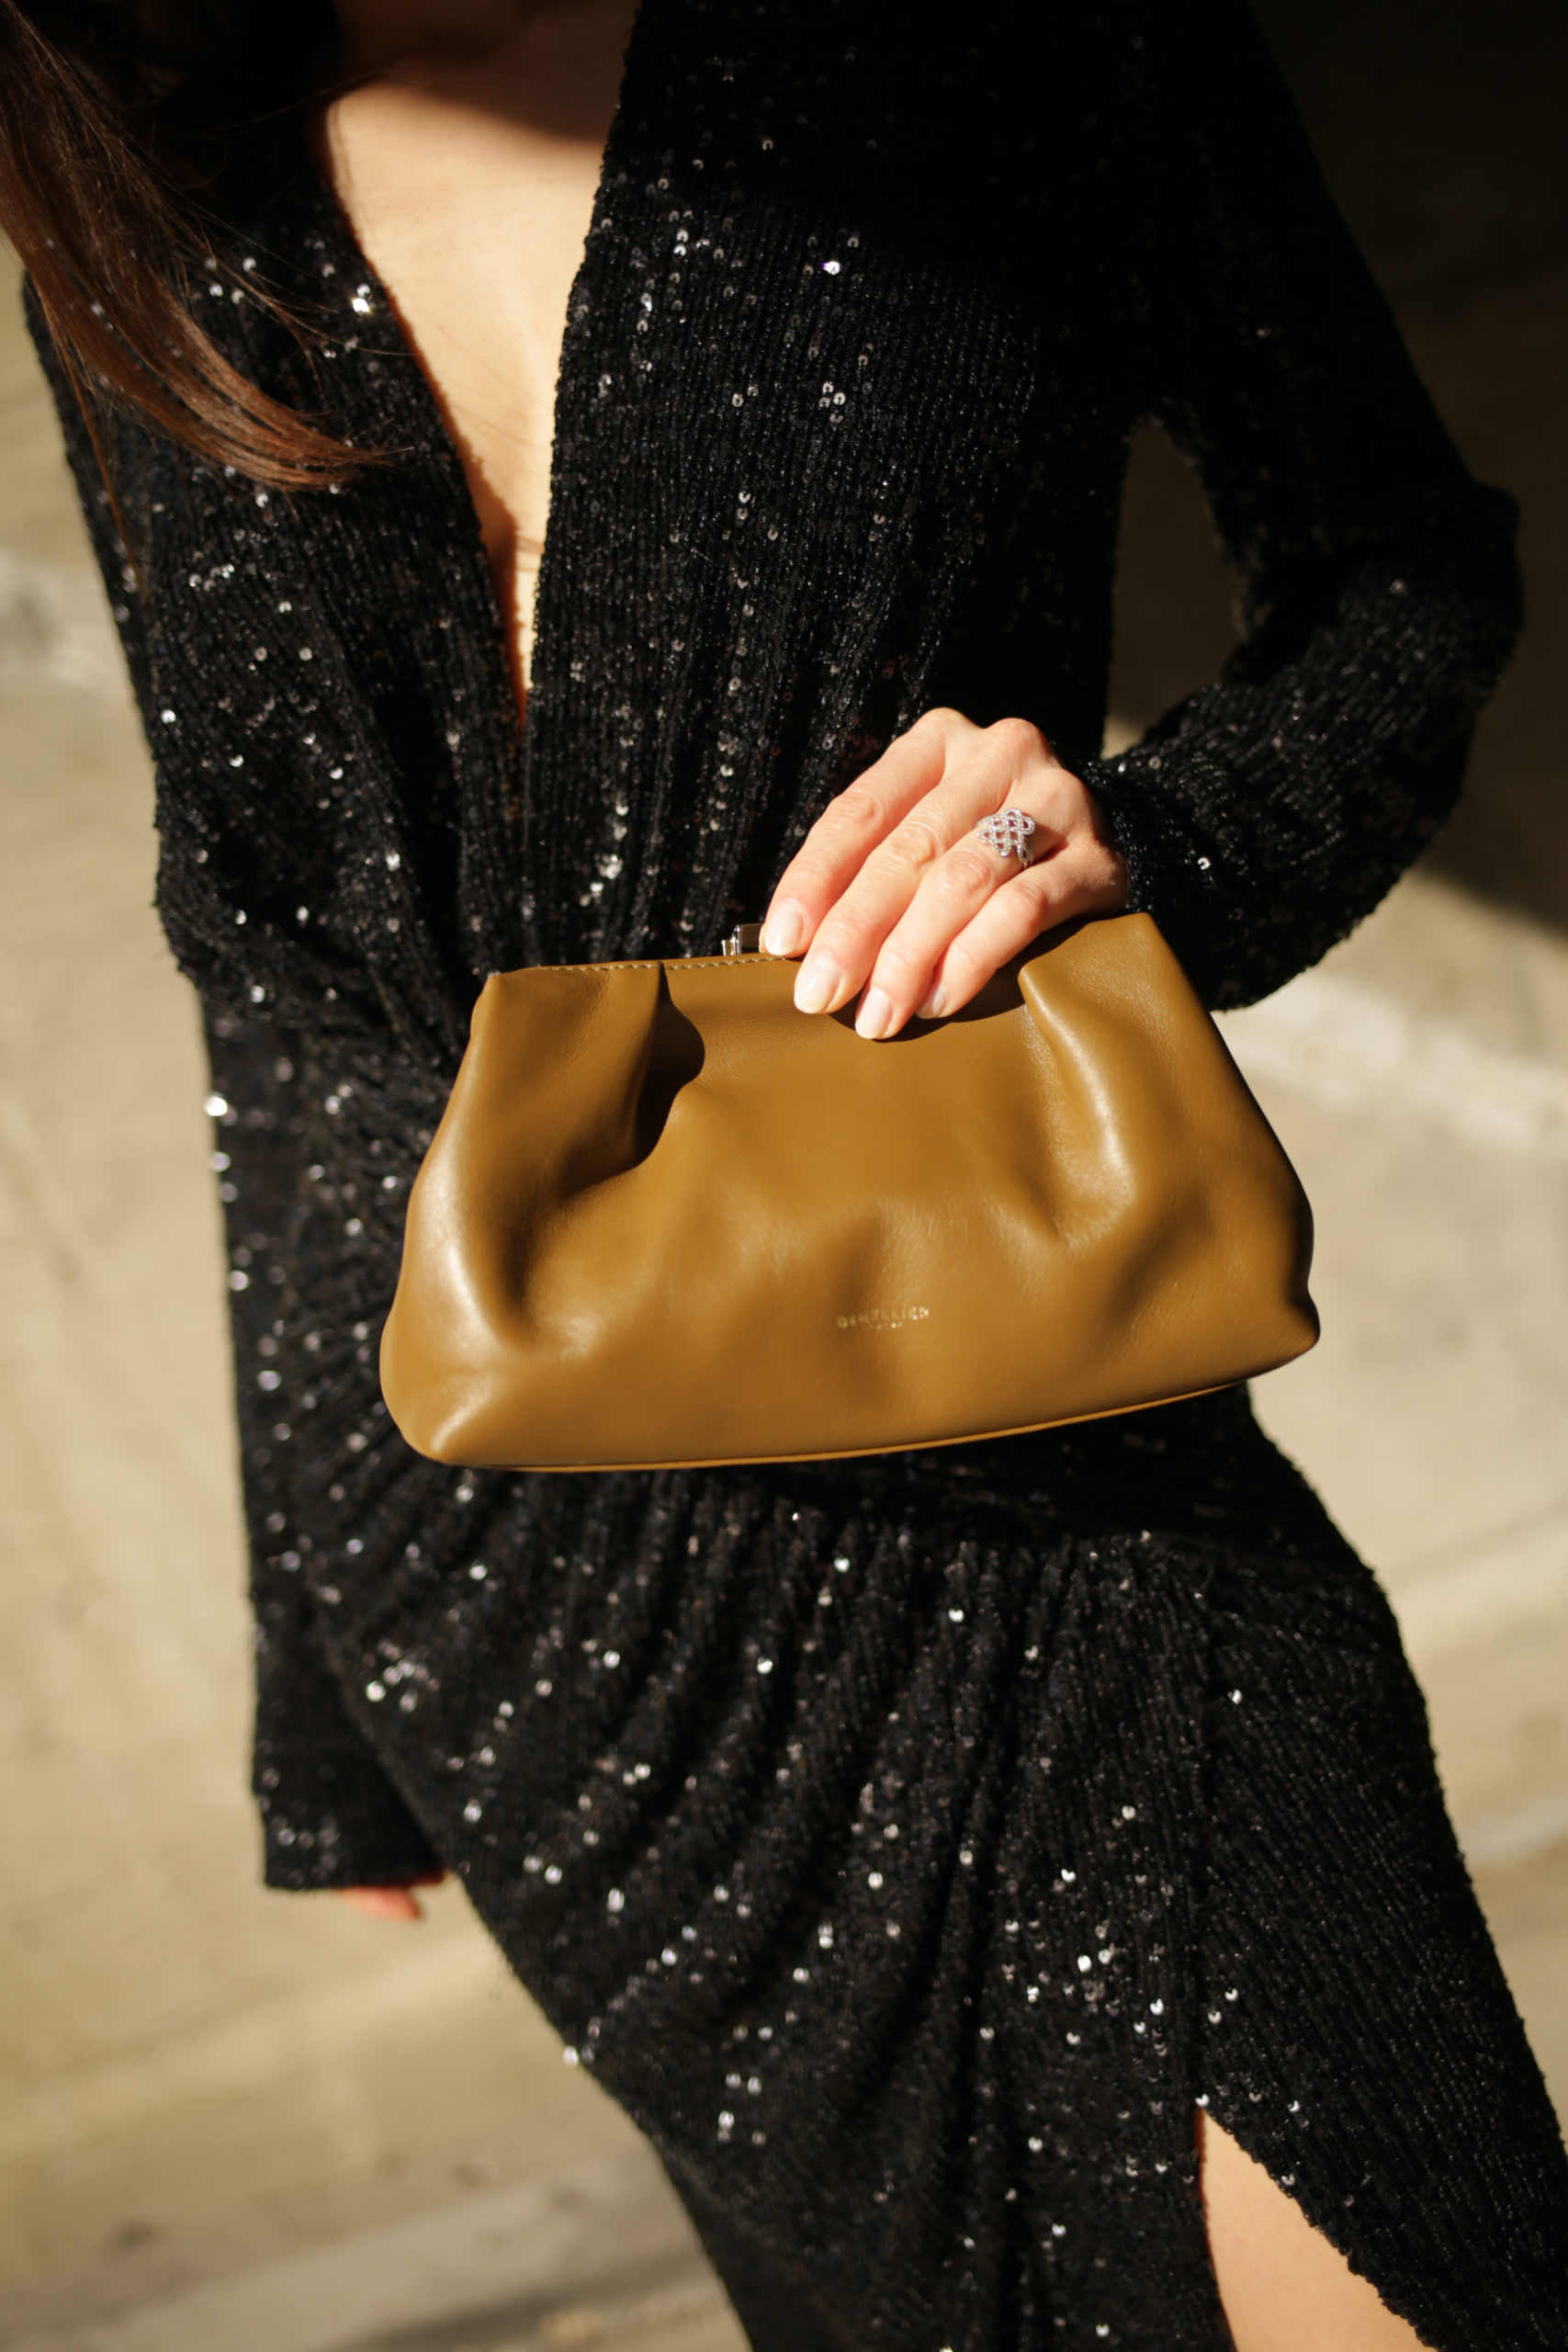 Holiday party outfits 2020 sequins dress in the mood for love mini florence bag bag demellier london